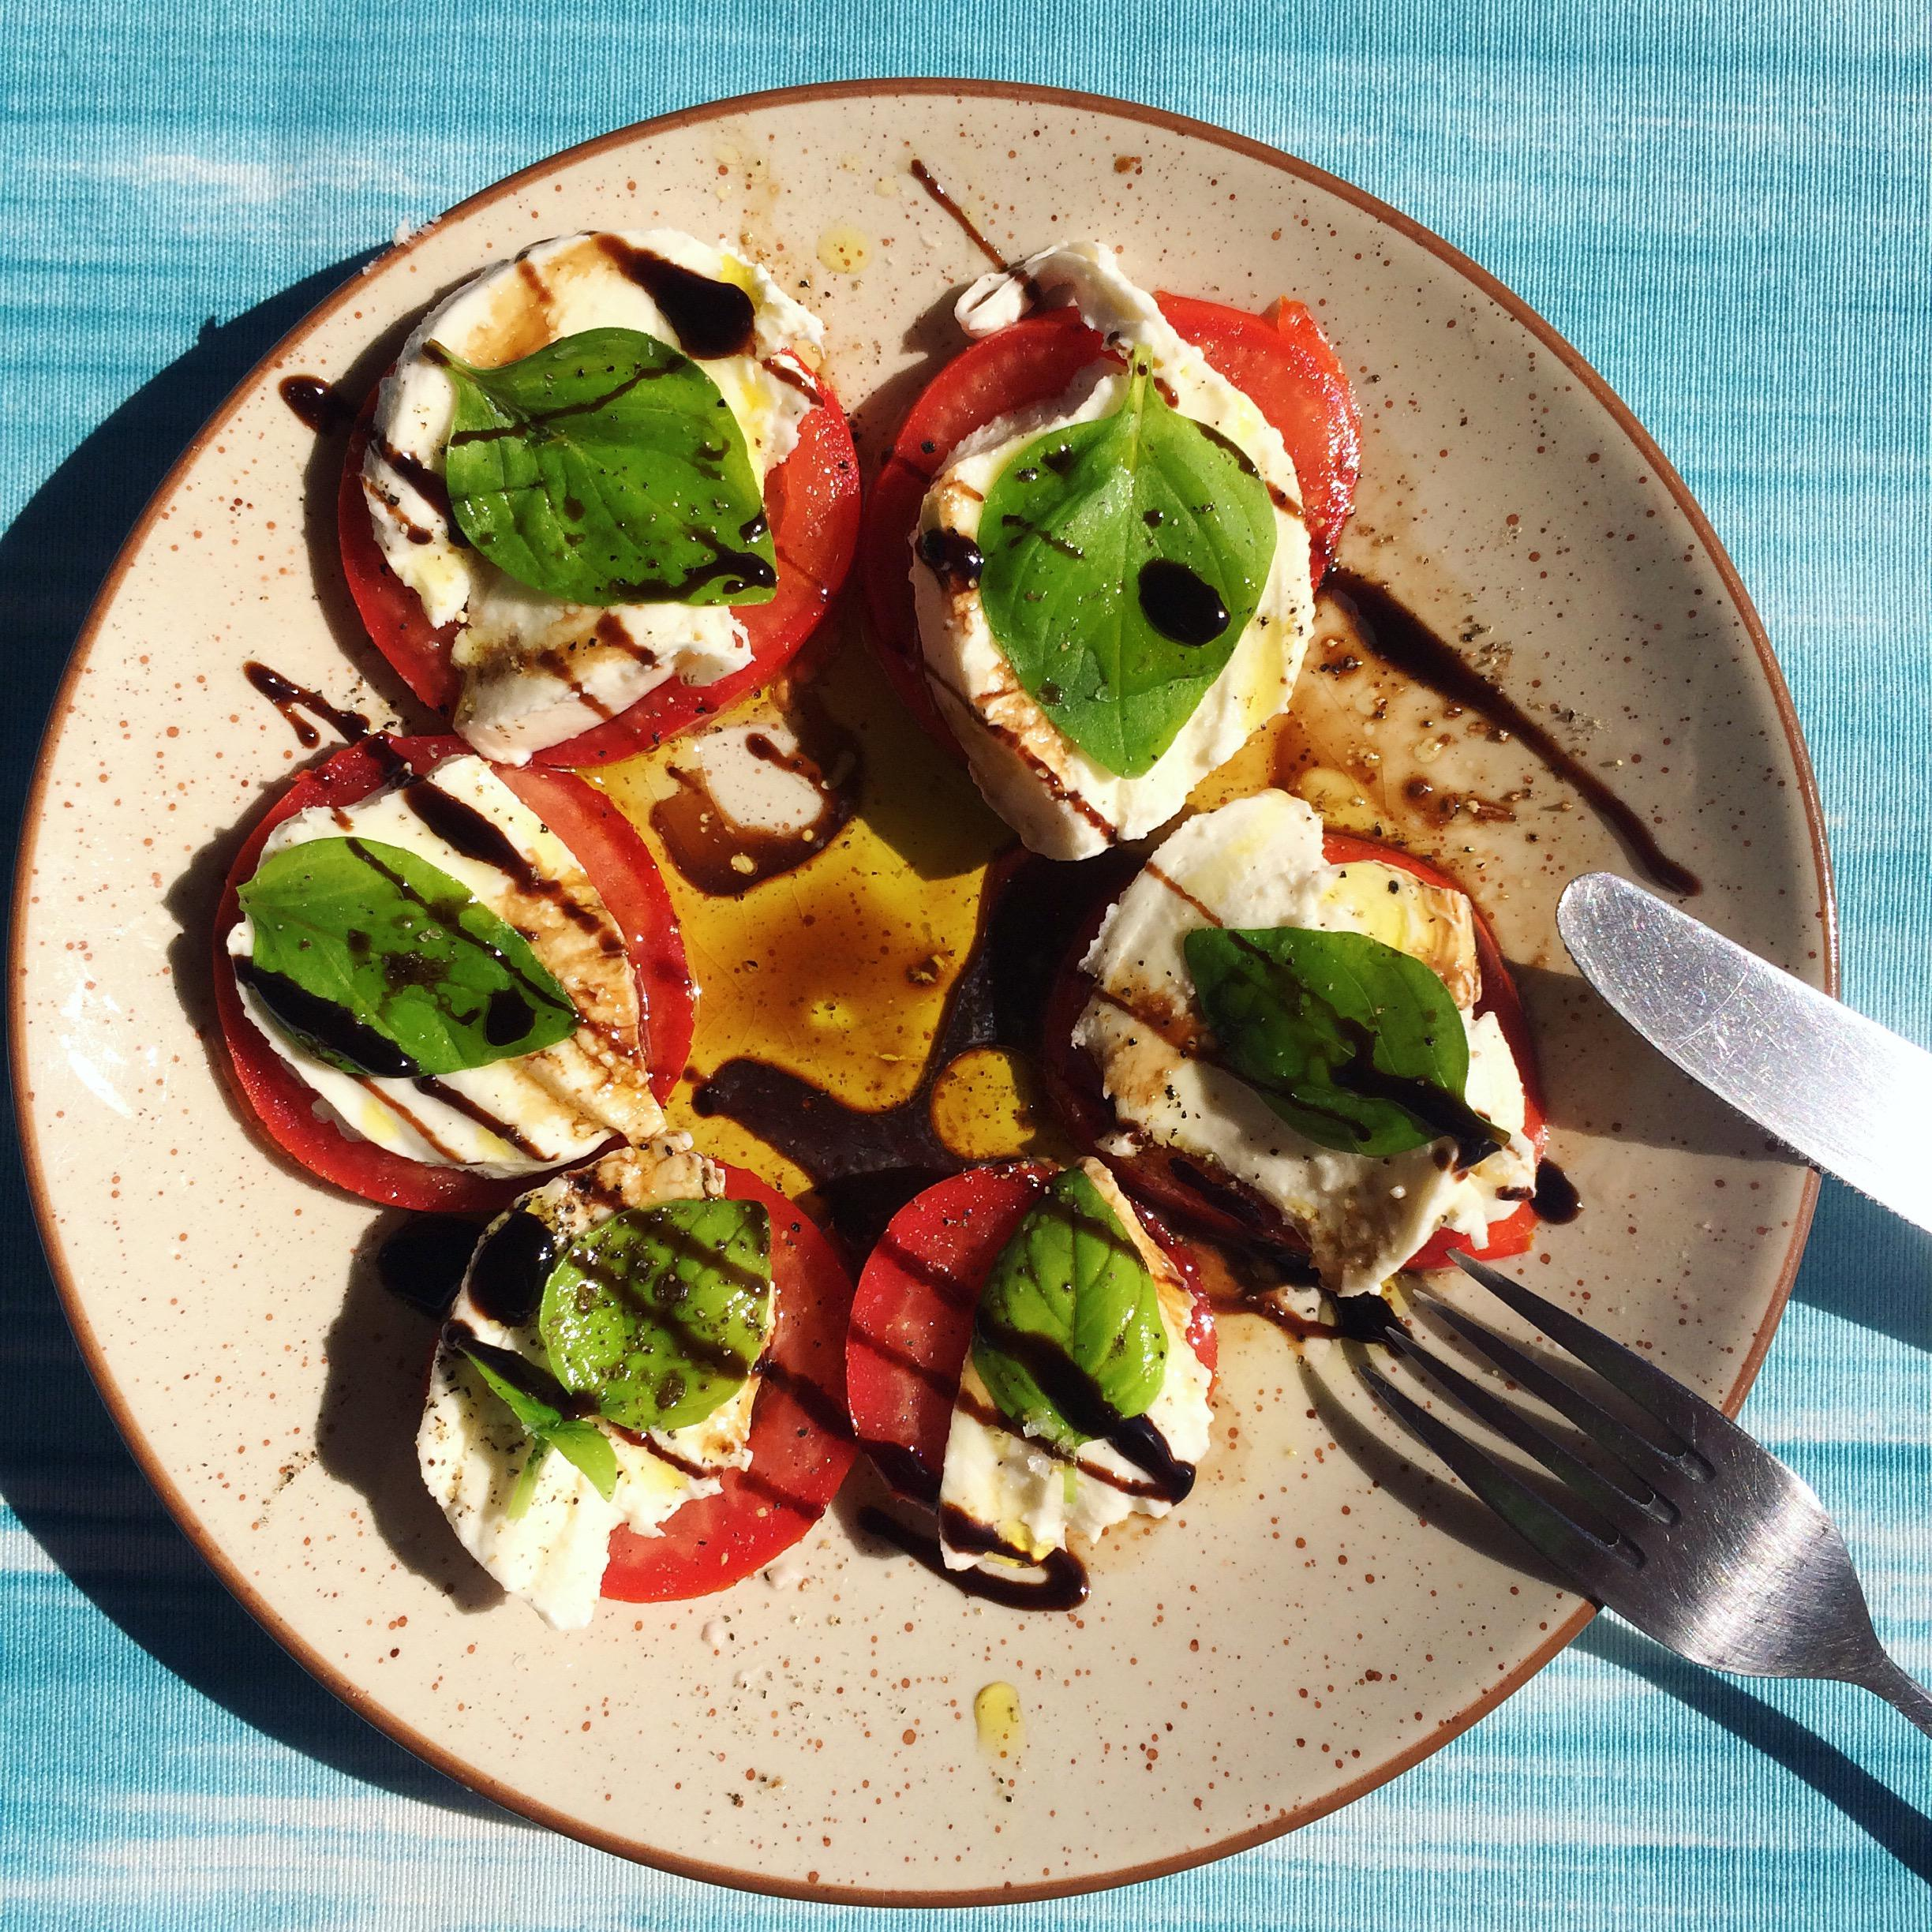 Summer Food #yummy #salat #tomatemozzarella #foodlove